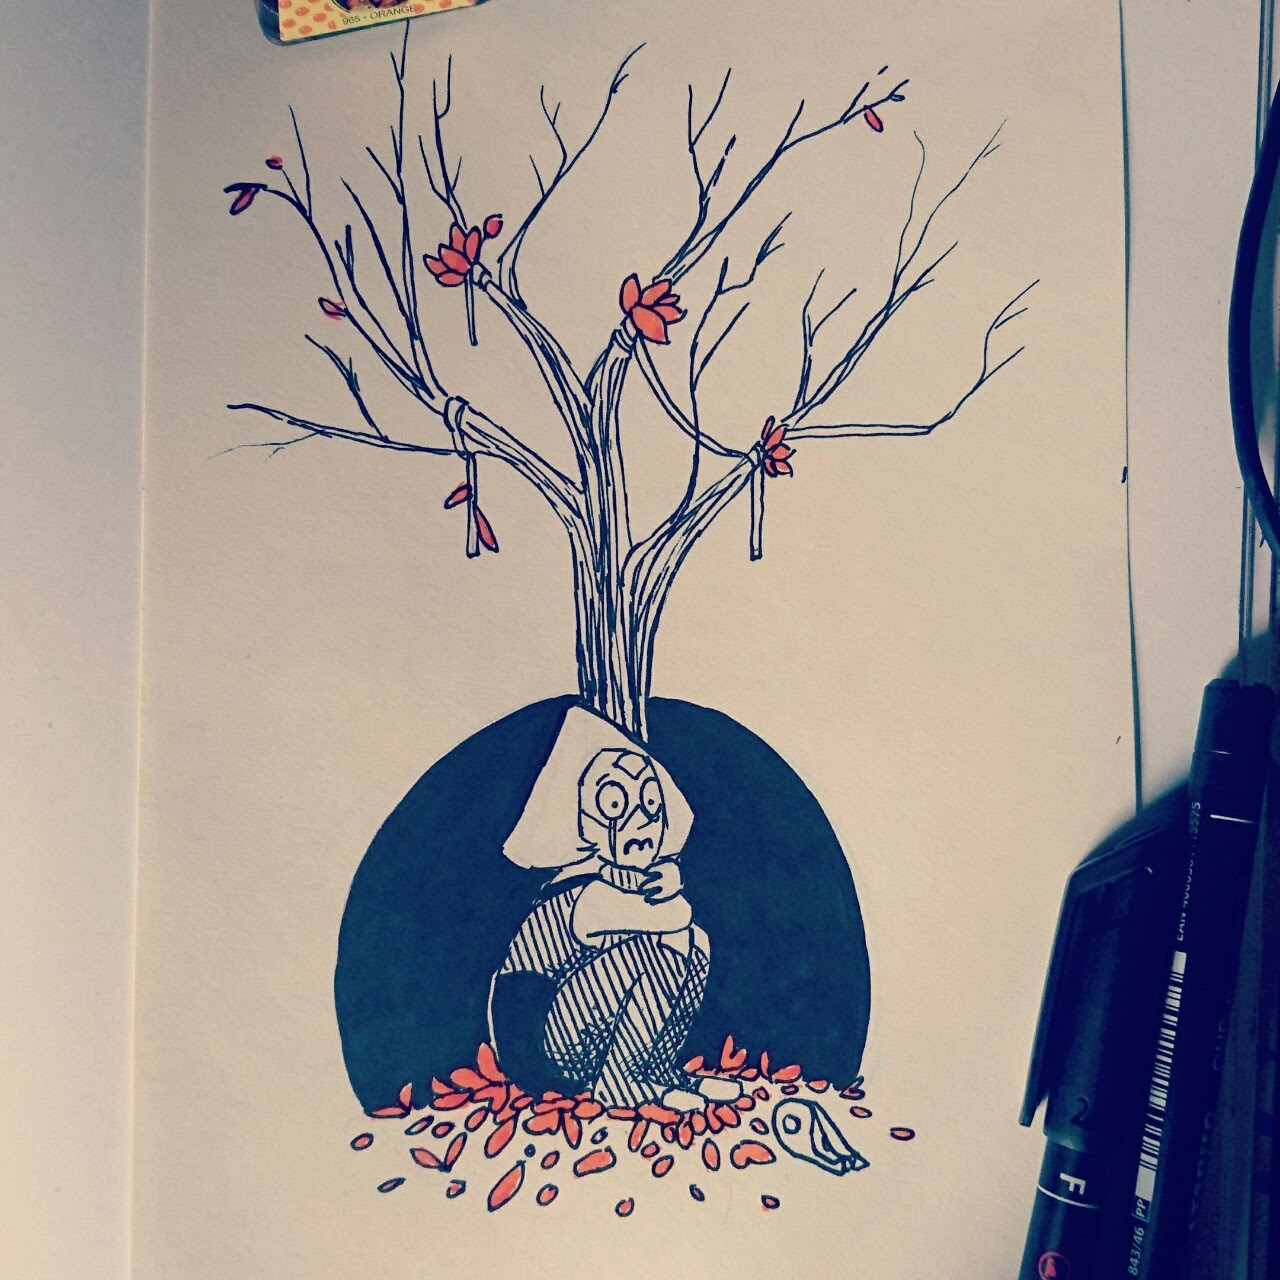 Day 7 of inktober! You can see the rest of the days so far on my instagram.